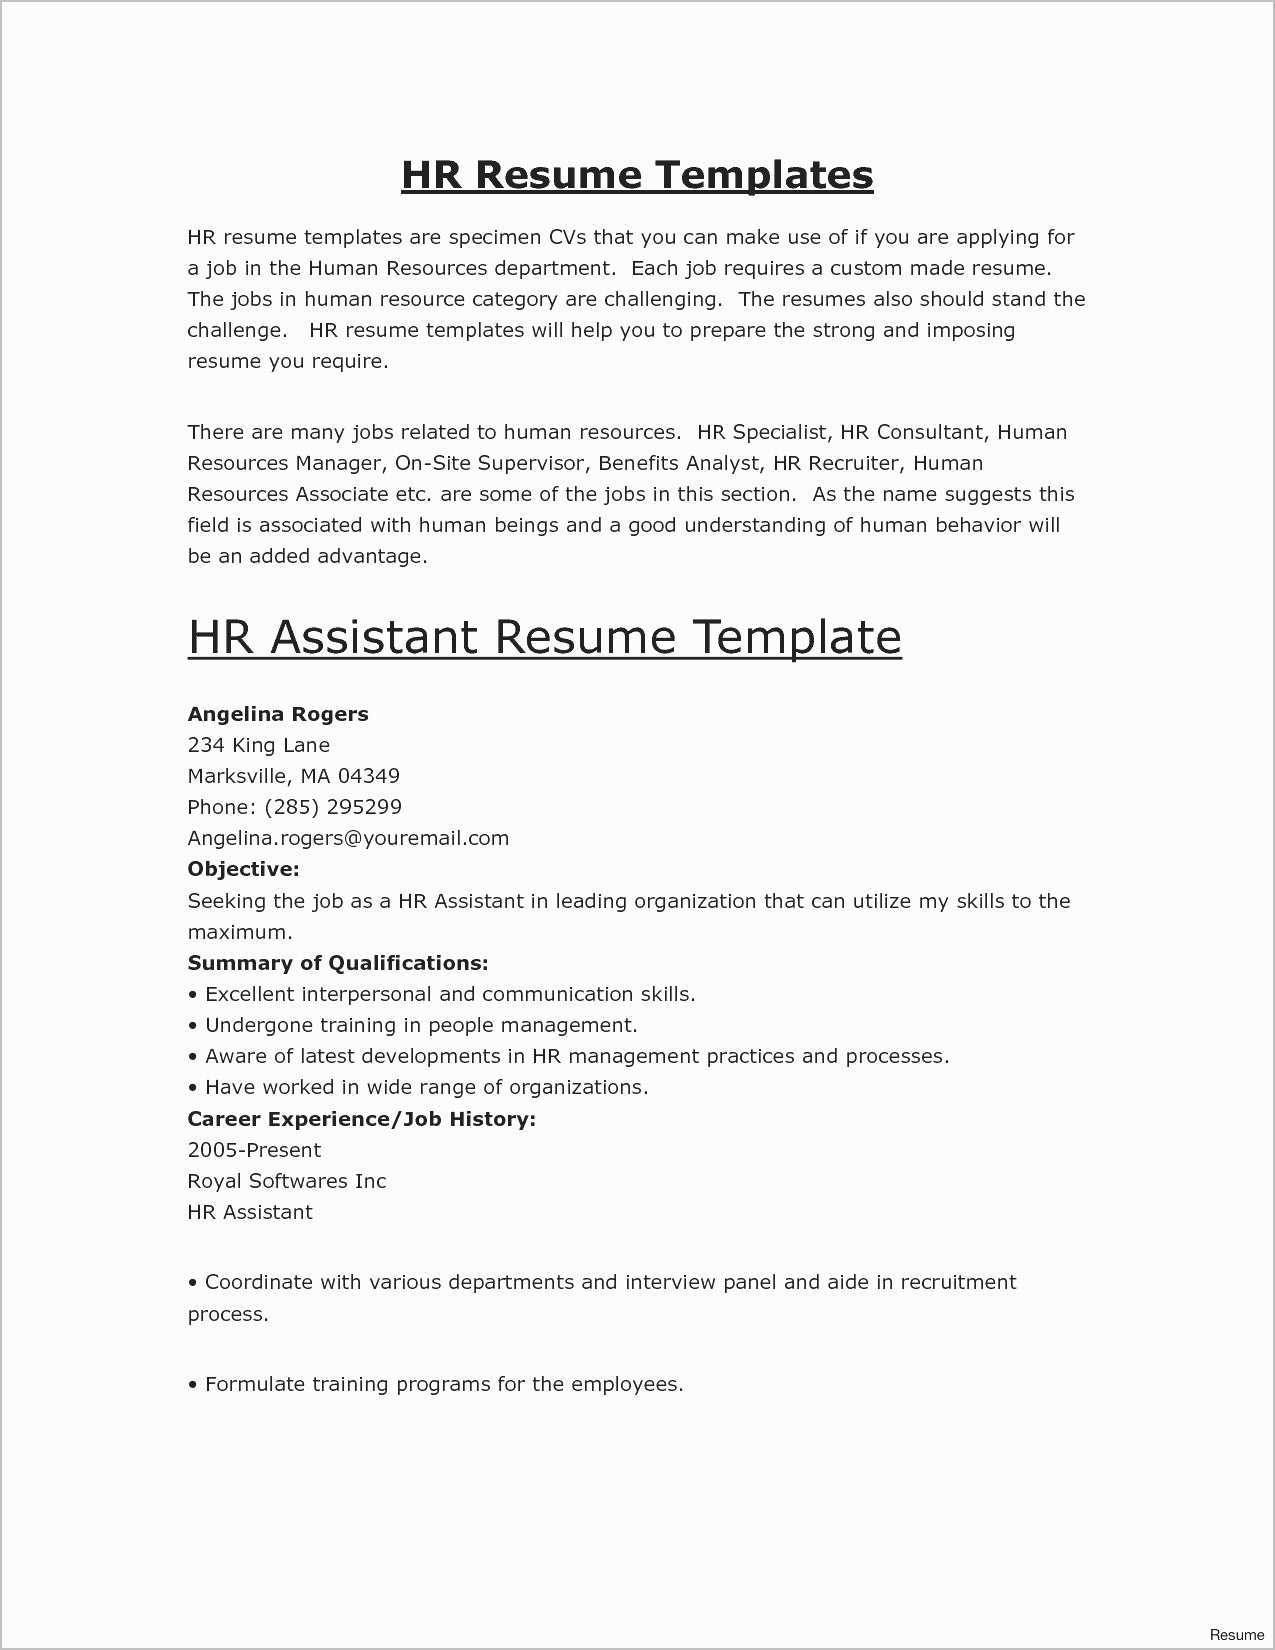 Find Resumes On Indeed - Good Headline for Indeed Resume 21 Typical Indeed Resume Edit Sierra